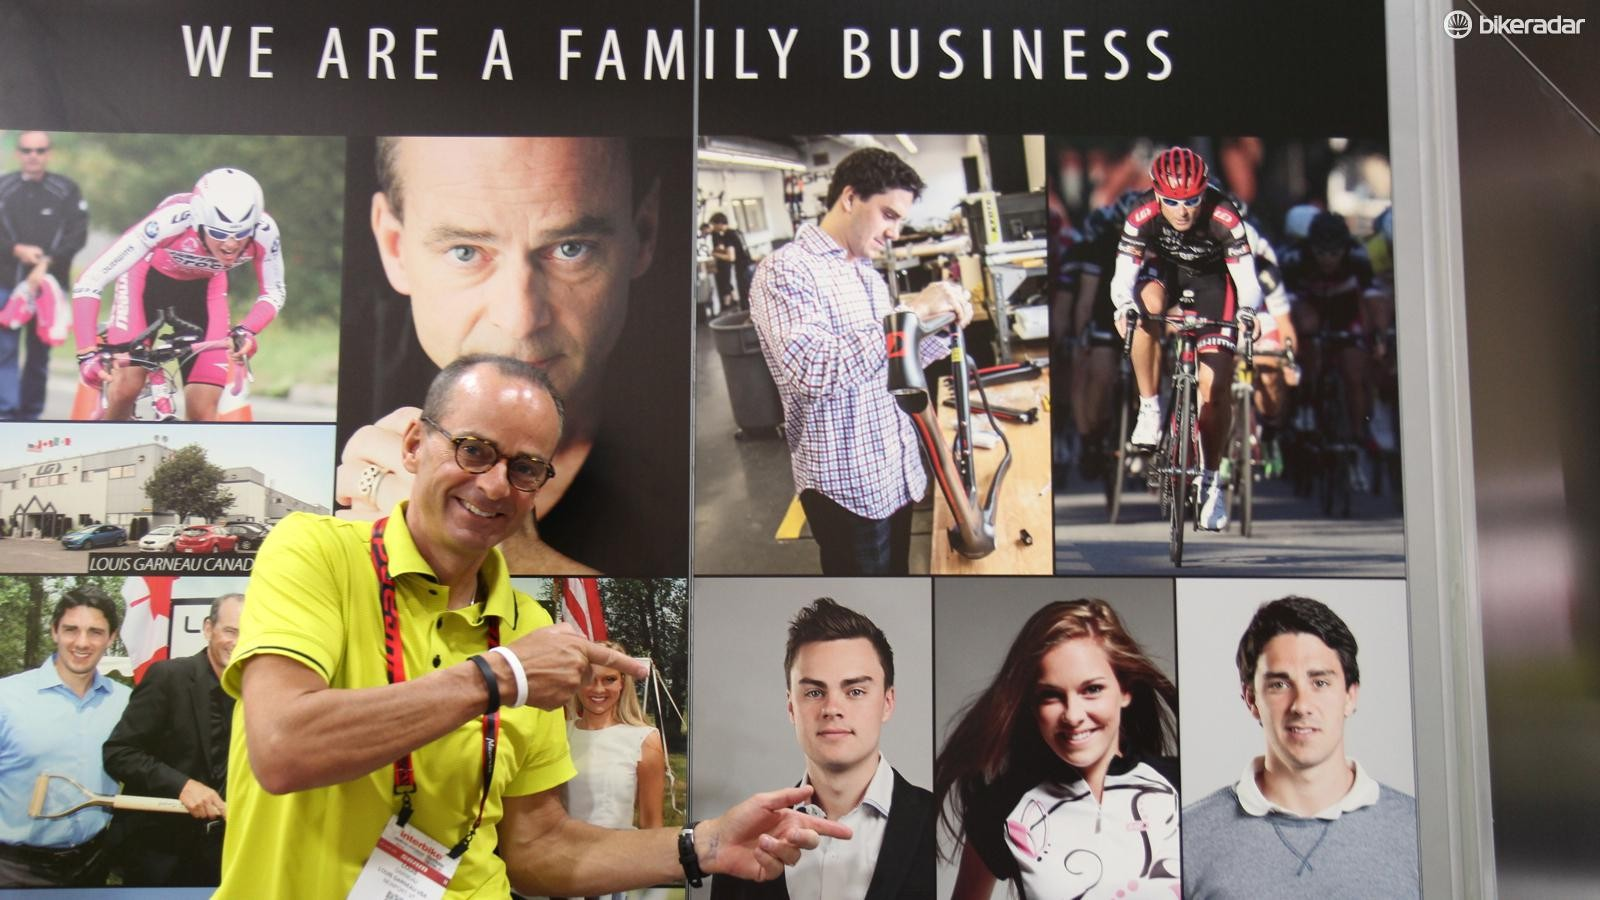 Company founder Louis Garneau is proud of his children Edouard, Victoria and William, who are involved in the business